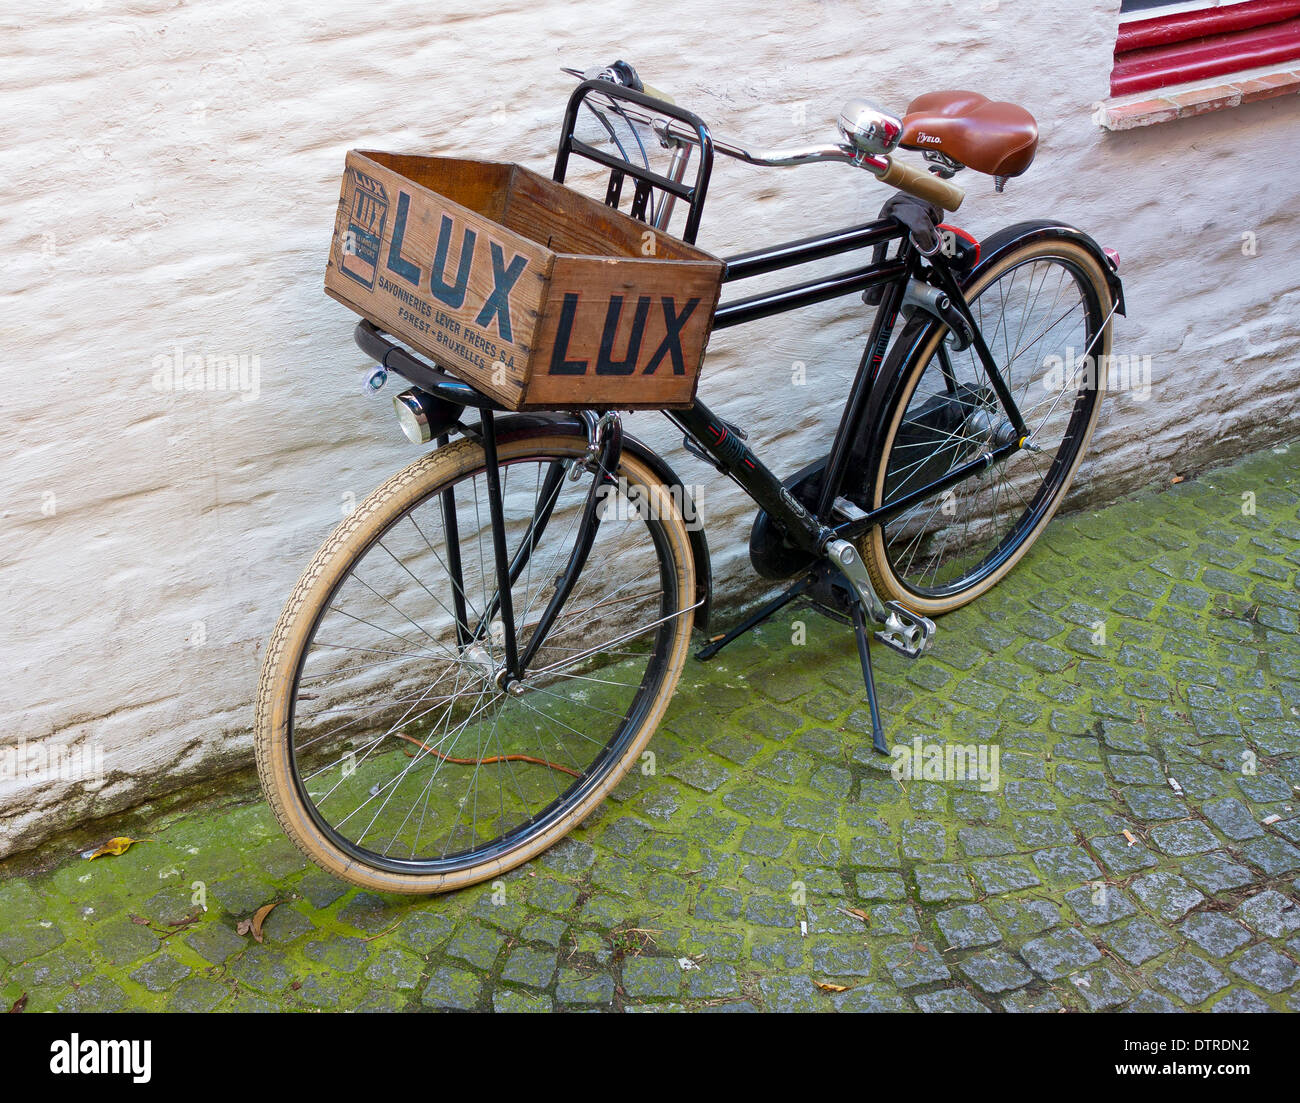 Bicycle With Wooden Lux Box Bruges Brugge Stock Photo 66898526